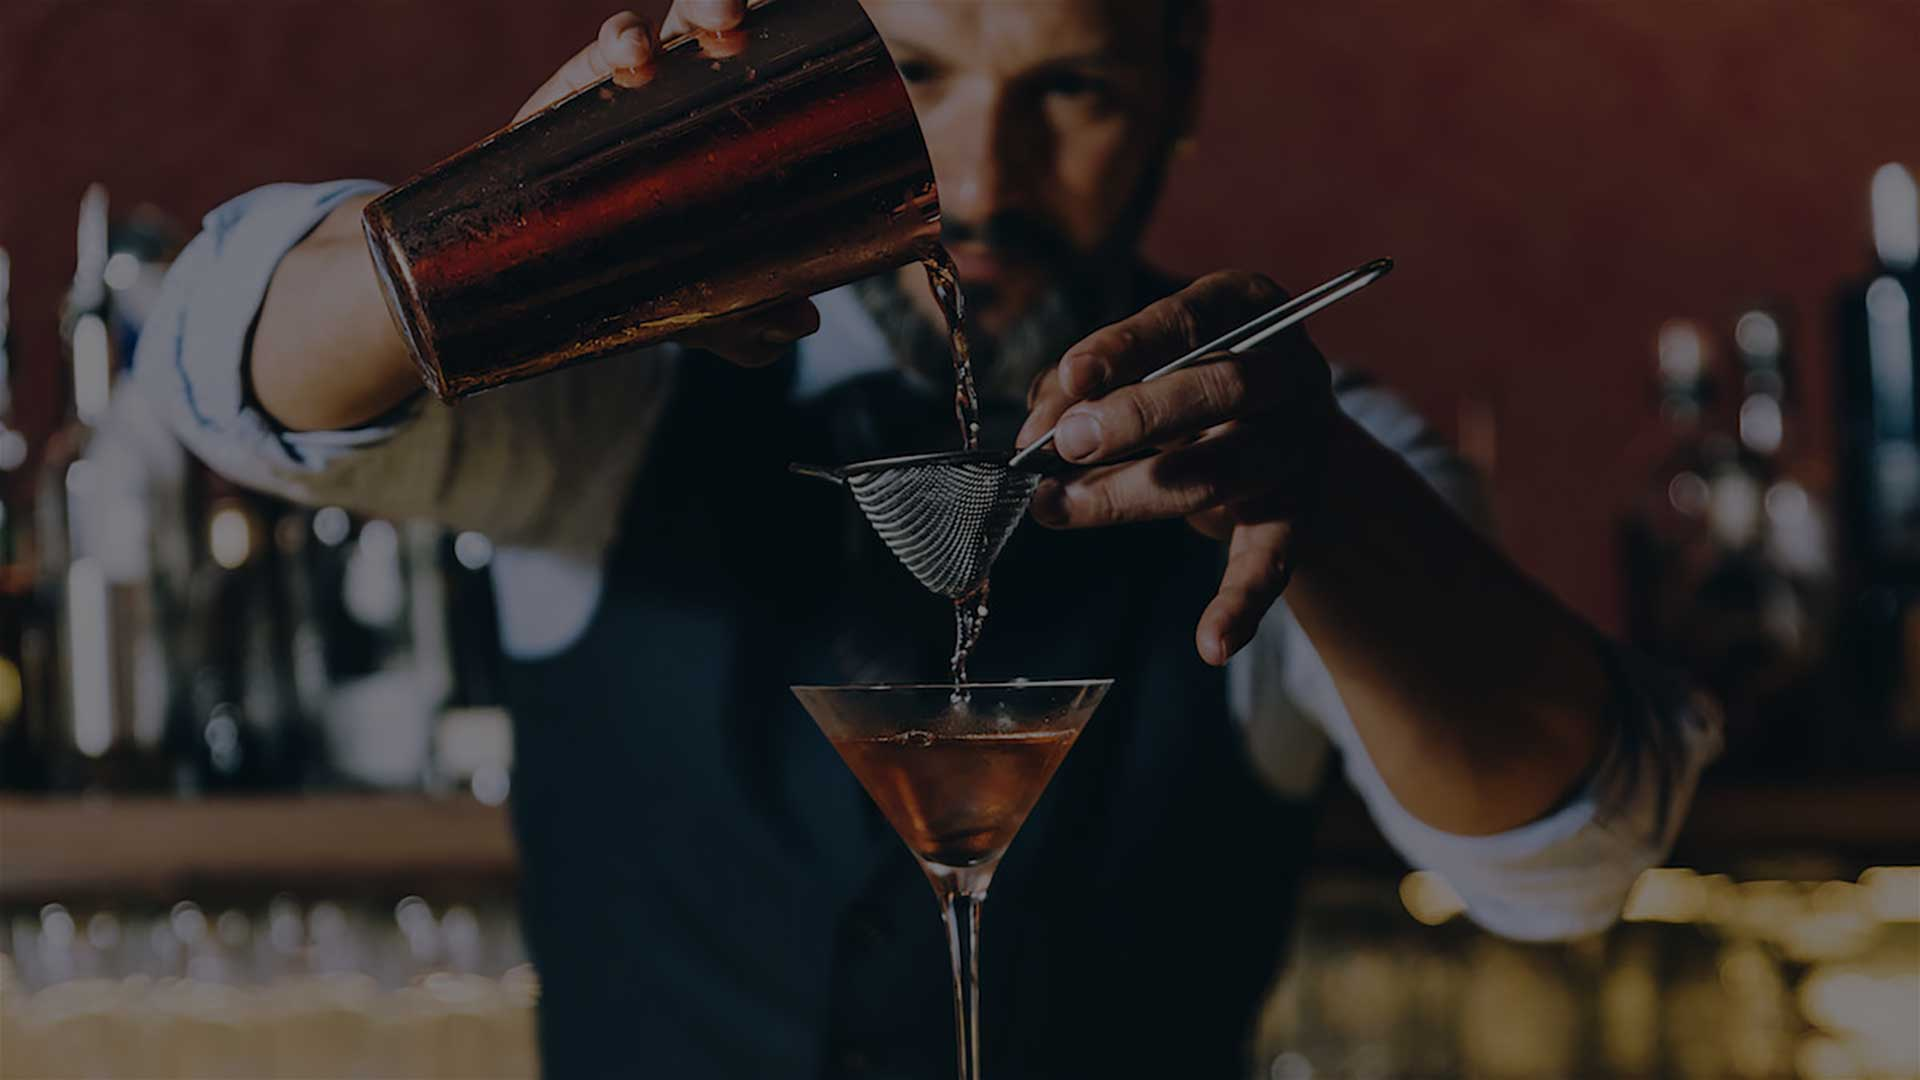 Turnkey Cocktail Bar. Restaurant Franchise Directory. ReadyMade Business for Sale